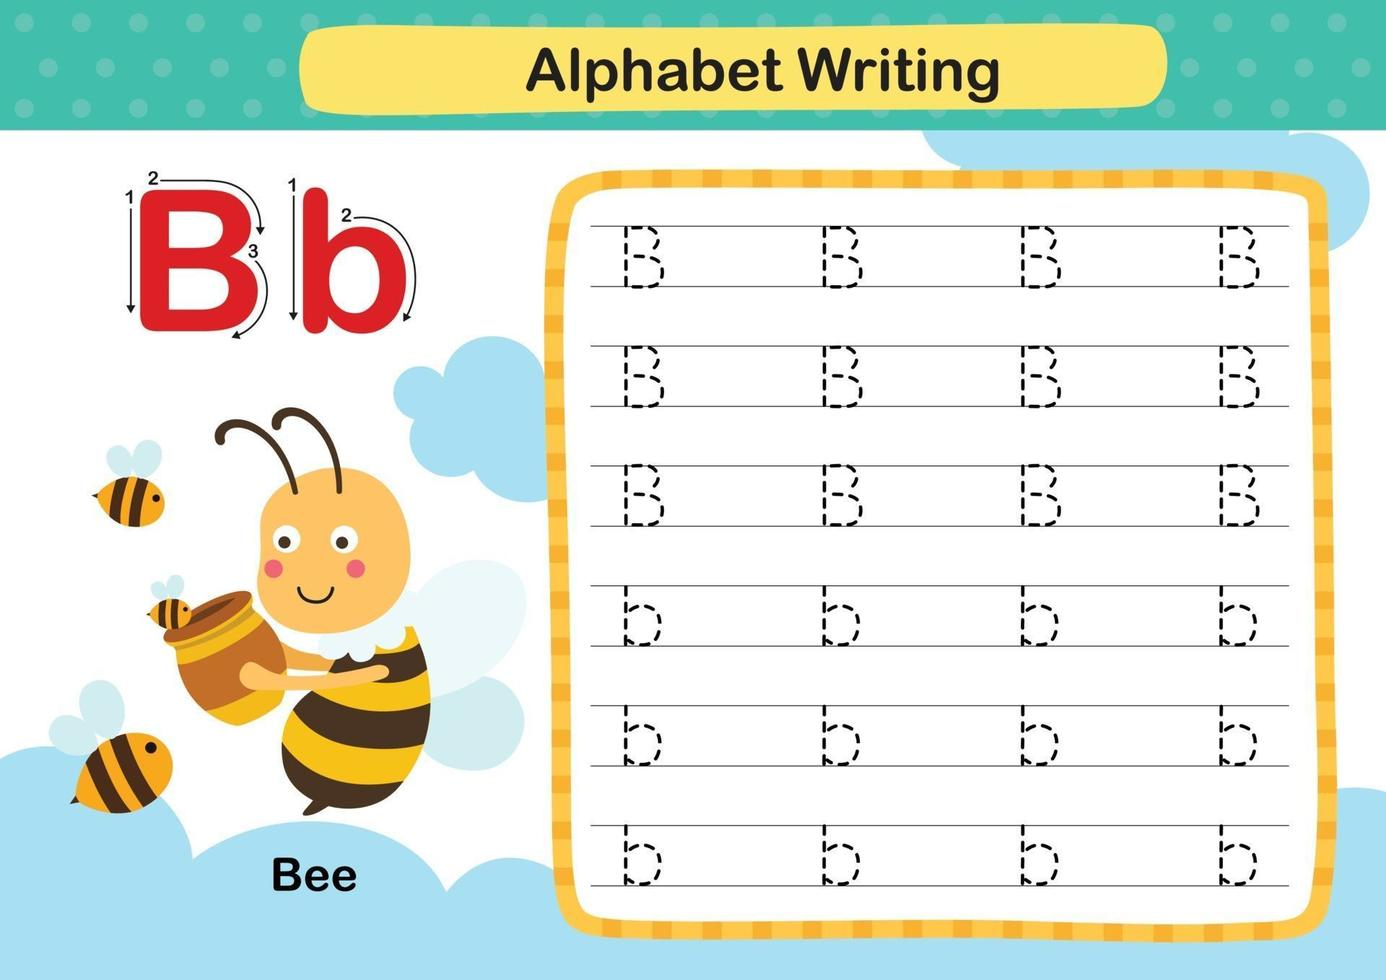 Alphabet Letter B-Bee exercise with cartoon vocabulary illustration, vector